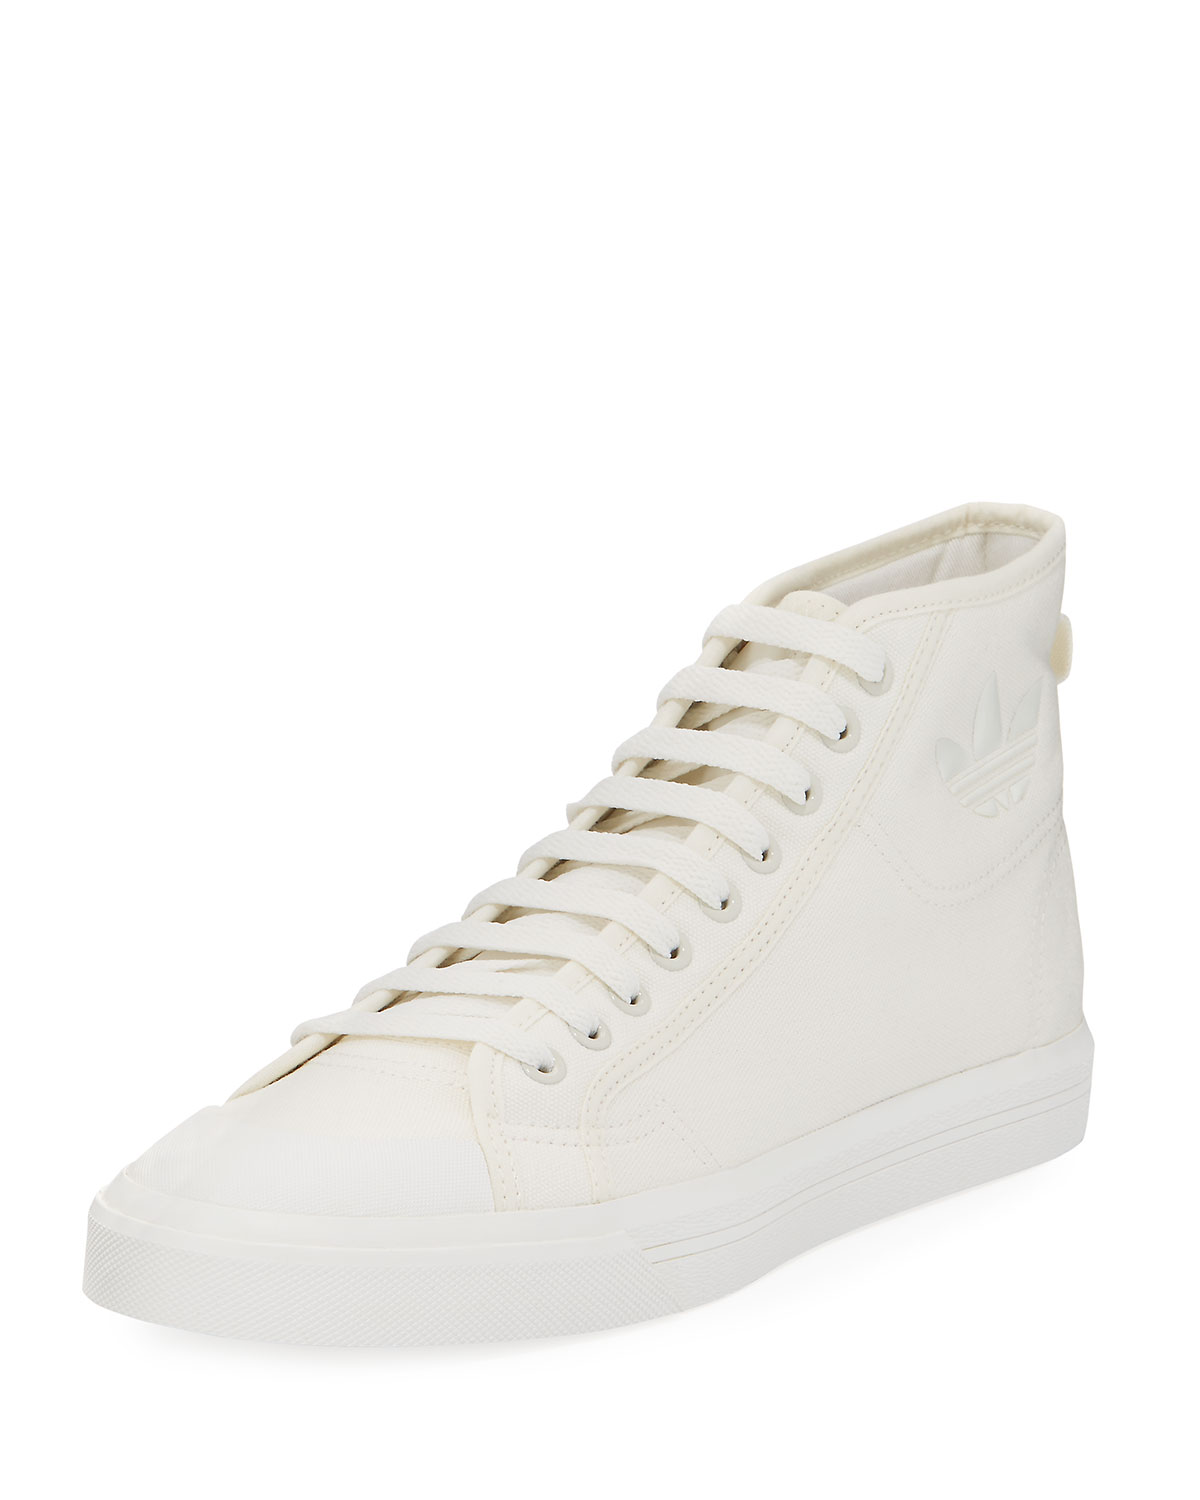 ce18b9e25518b adidas by Raf Simons Men s Spirit Canvas High-Top Sneakers